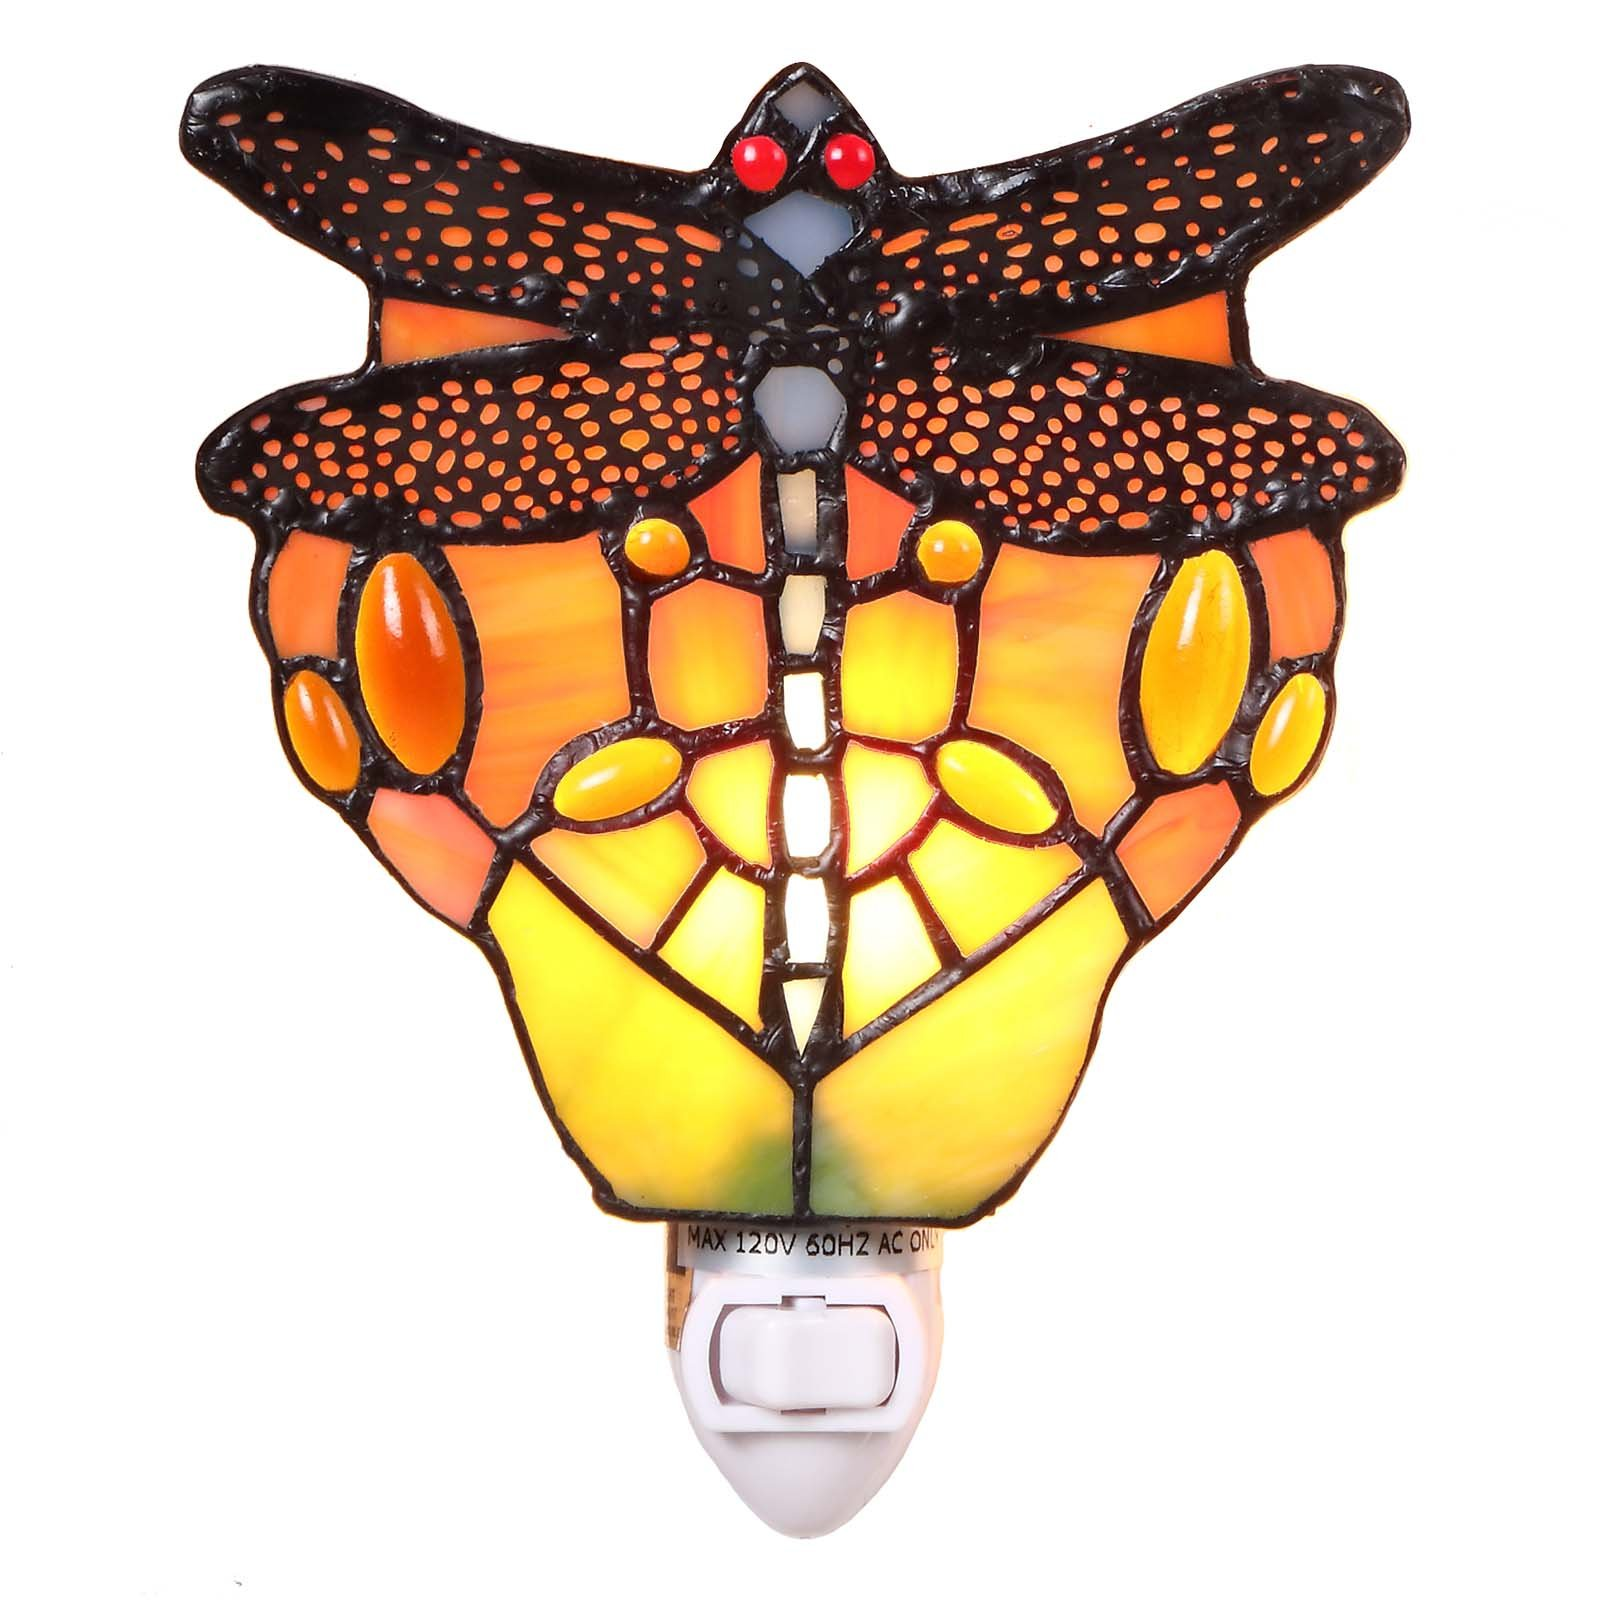 Bieye L11401 5-inch Dragonfly Tiffany Style Stained Glass Night Light, Wall Lamp